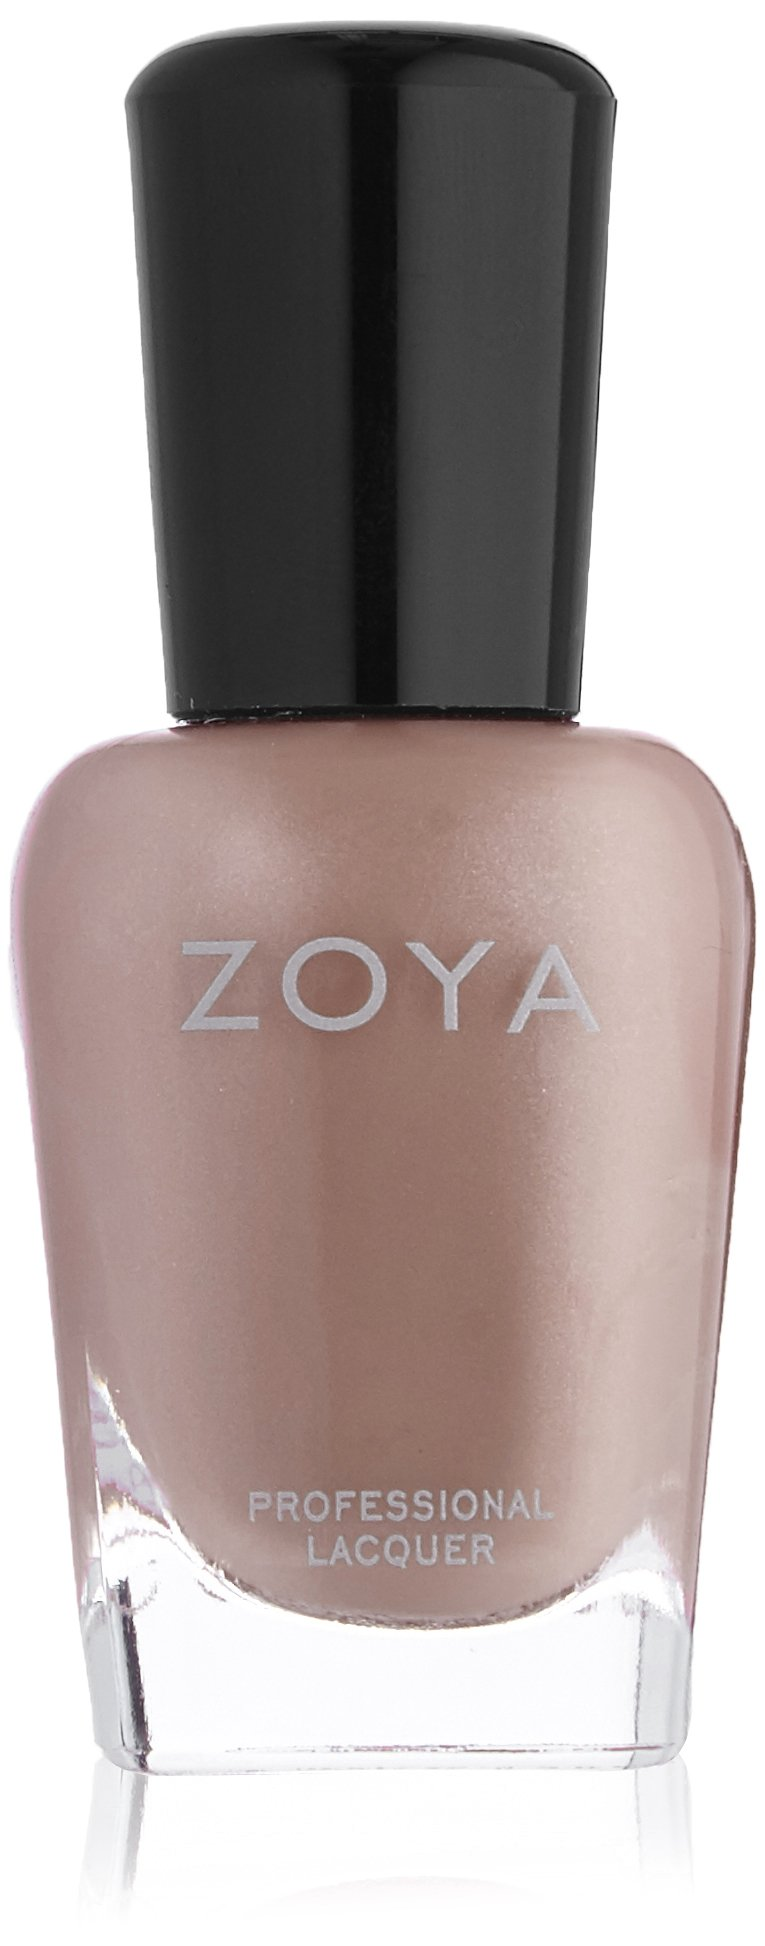 61ompb%2BZPgL amazon com zoya nail polish luxury beauty  at panicattacktreatment.co